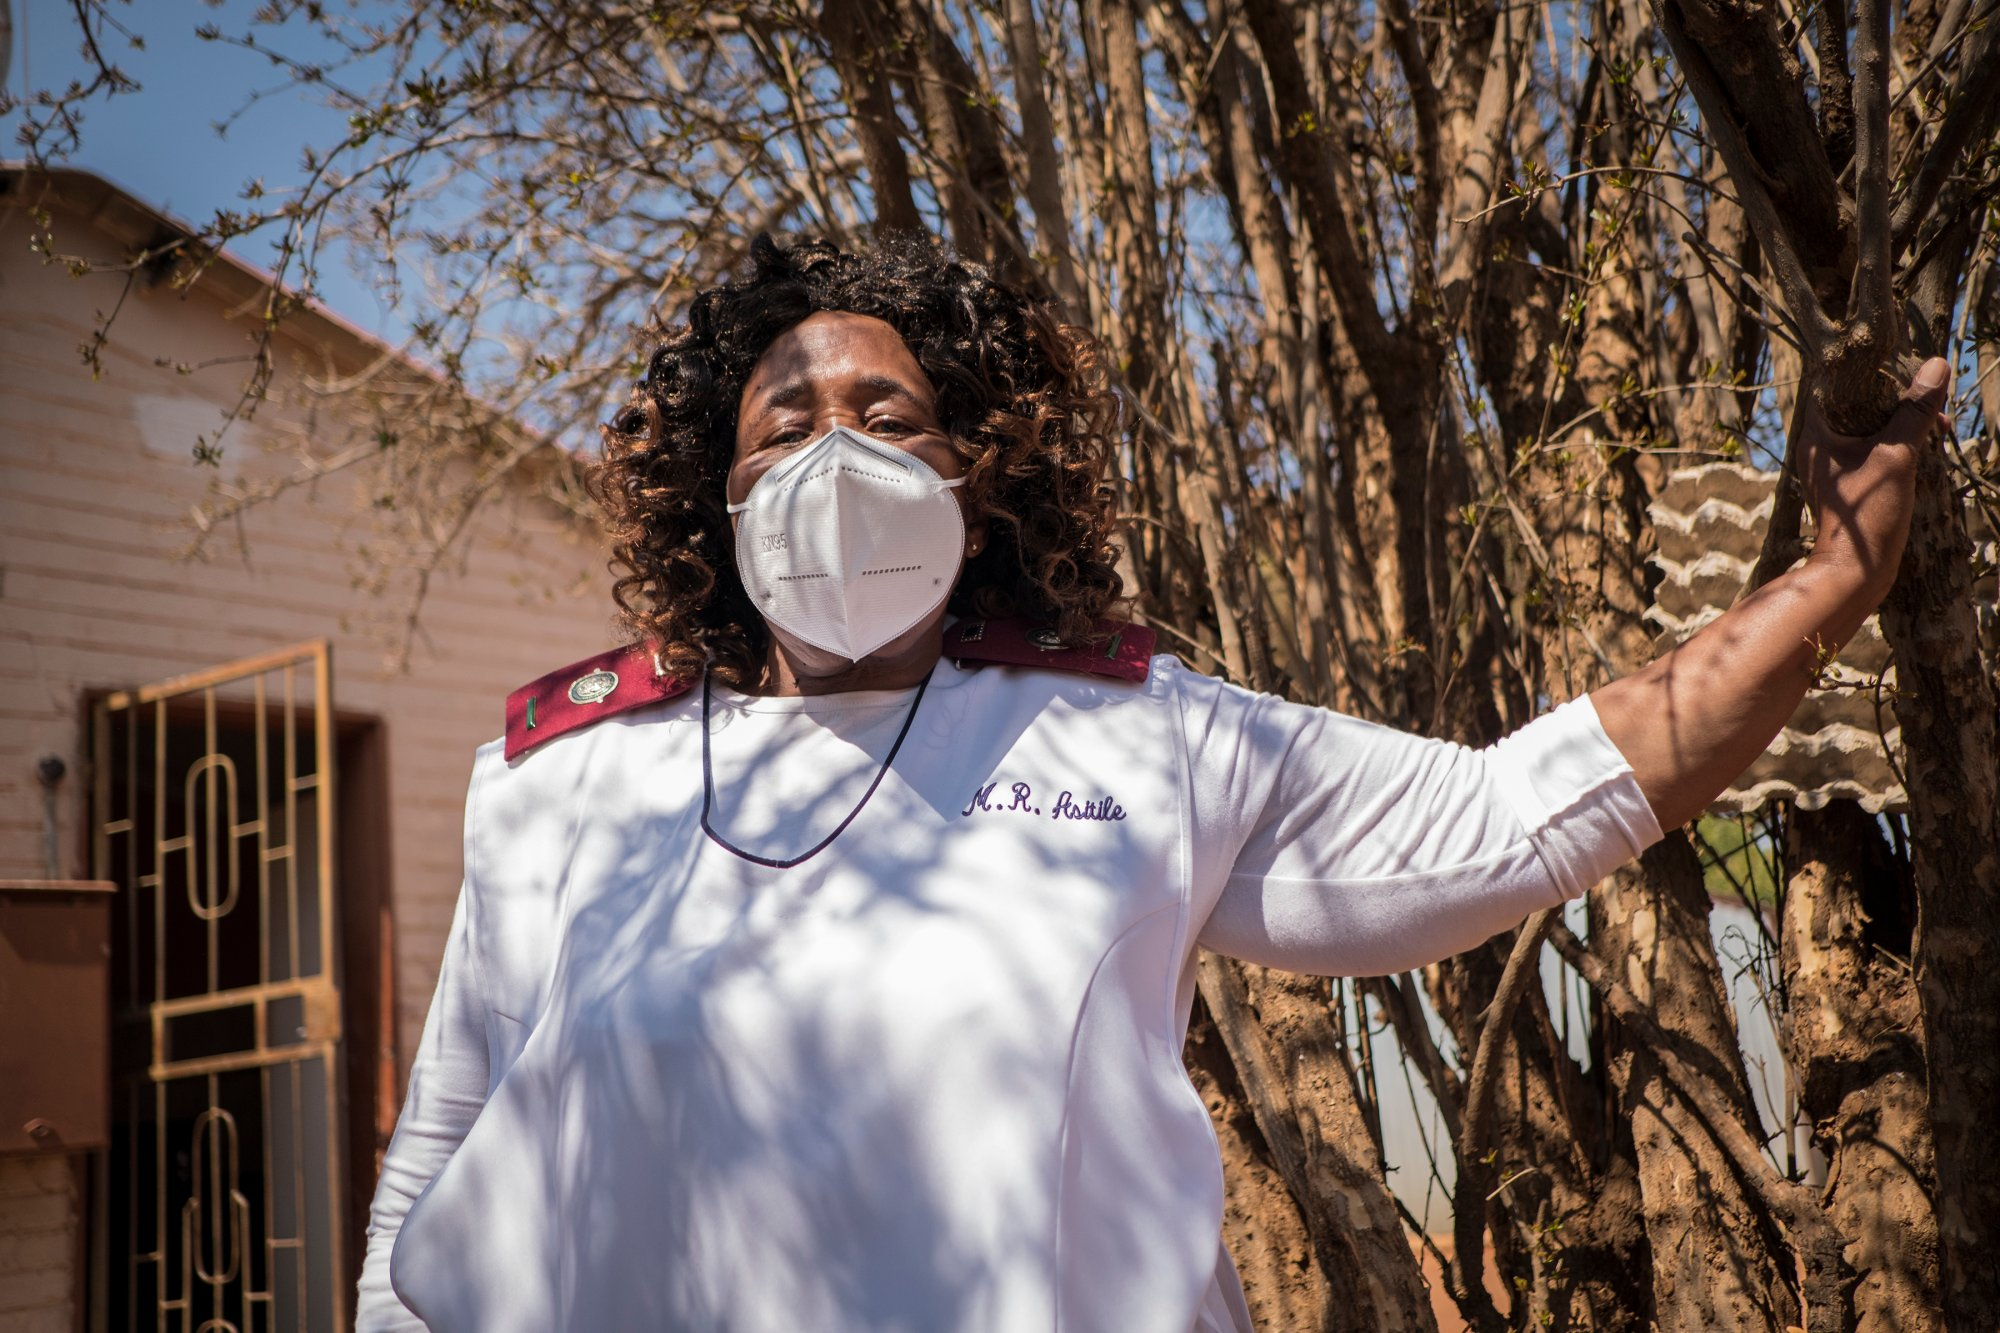 Sister Rachel Asitile (61) stands for a portrait outside the home of a patient who tested positive for COVID-19.   Thomson Reuters Foundation/Gulshan Khan